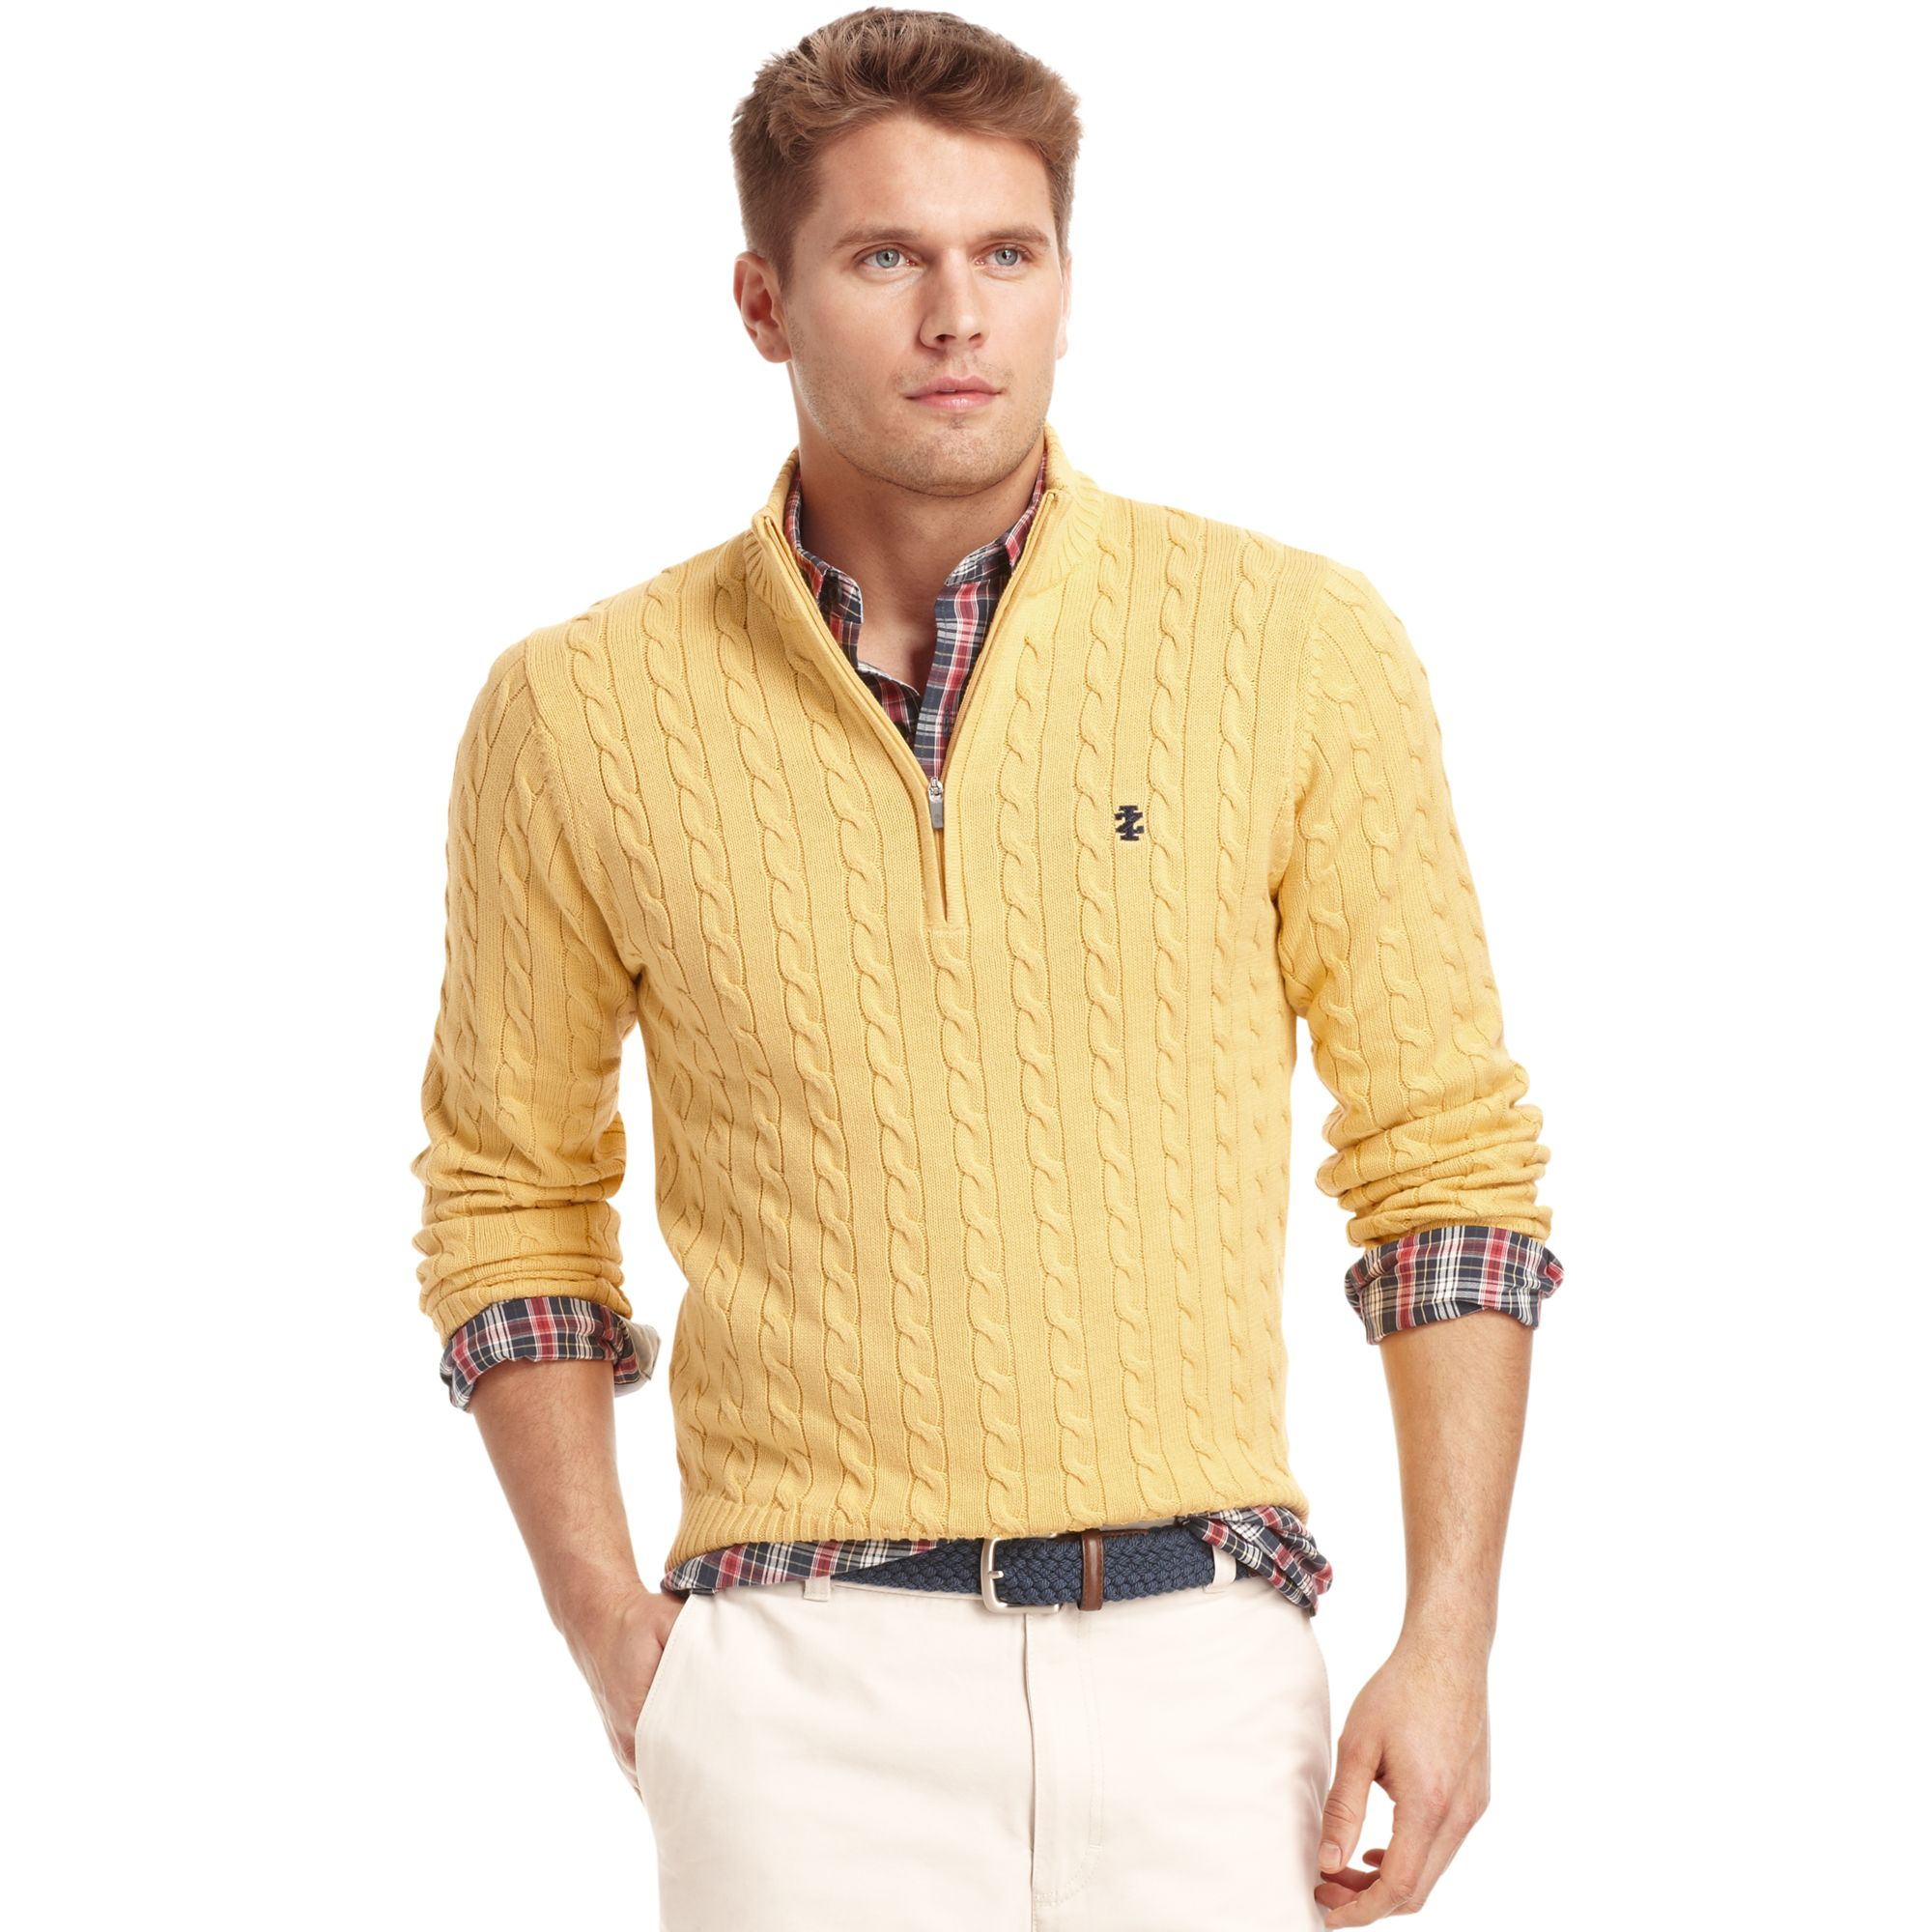 Round neck, v-neck, button-down or pullover, alpaca wool sweaters are indispensable for the winter months. The Inca people were the first to discover that alpaca wool is incredibly light and comfortably warm, which makes it ideal for trekking around the the Andean mountains and .